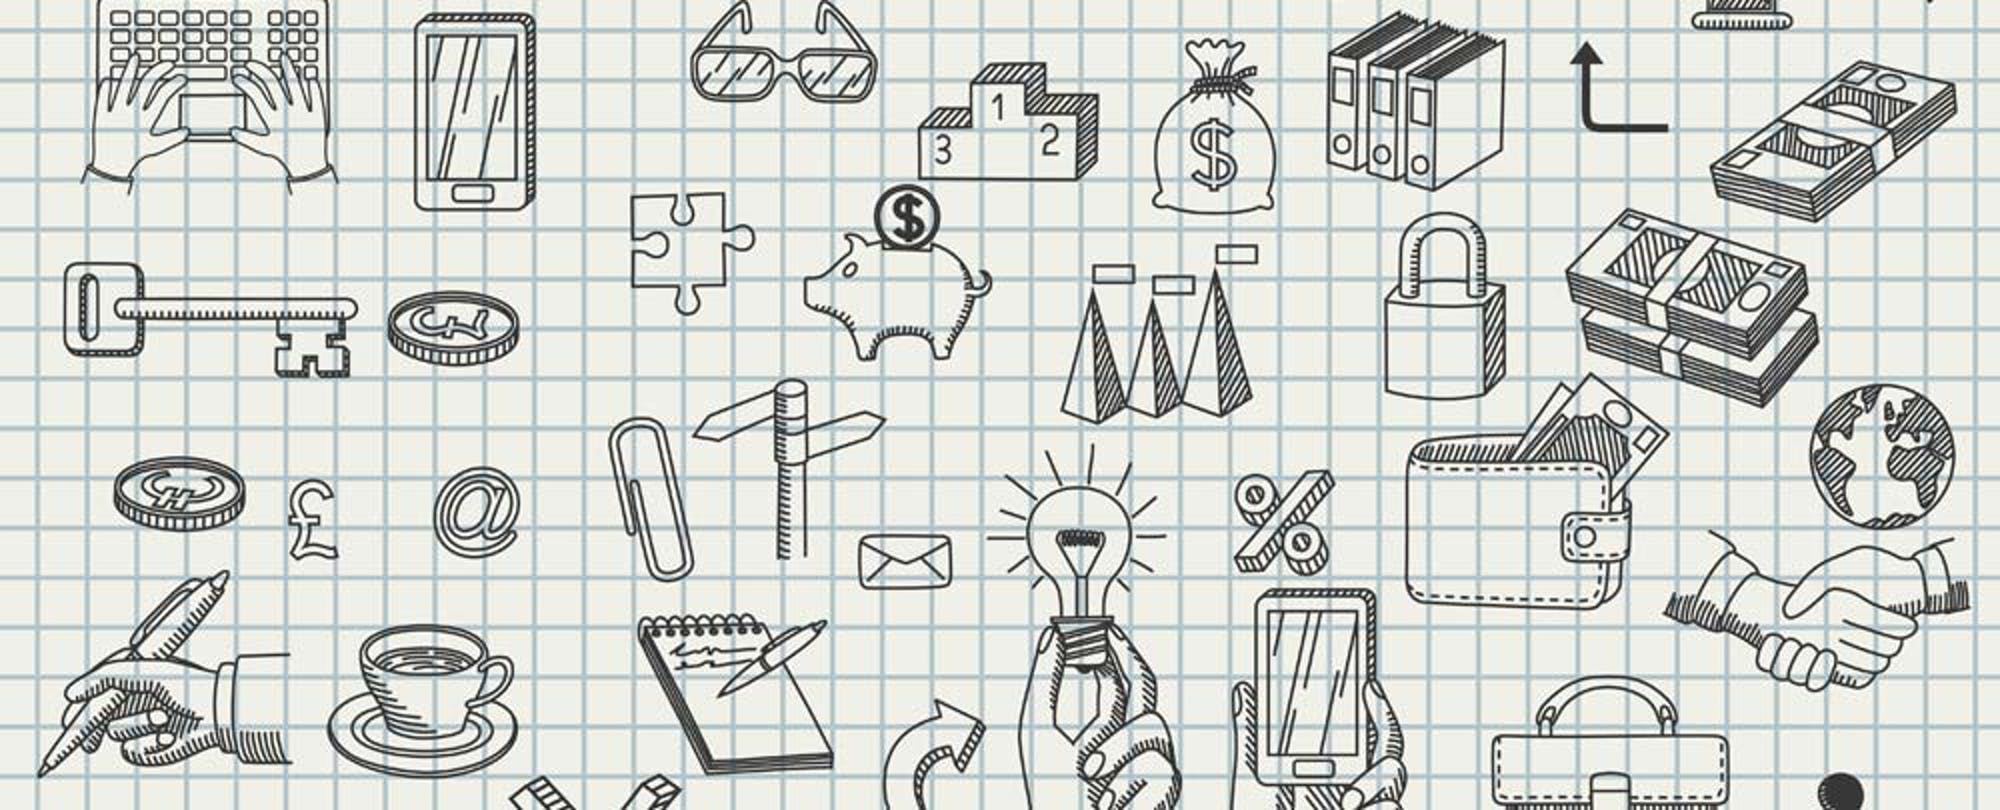 Backward Innovation: The Great Unbundling of Higher Ed's Online Service Providers